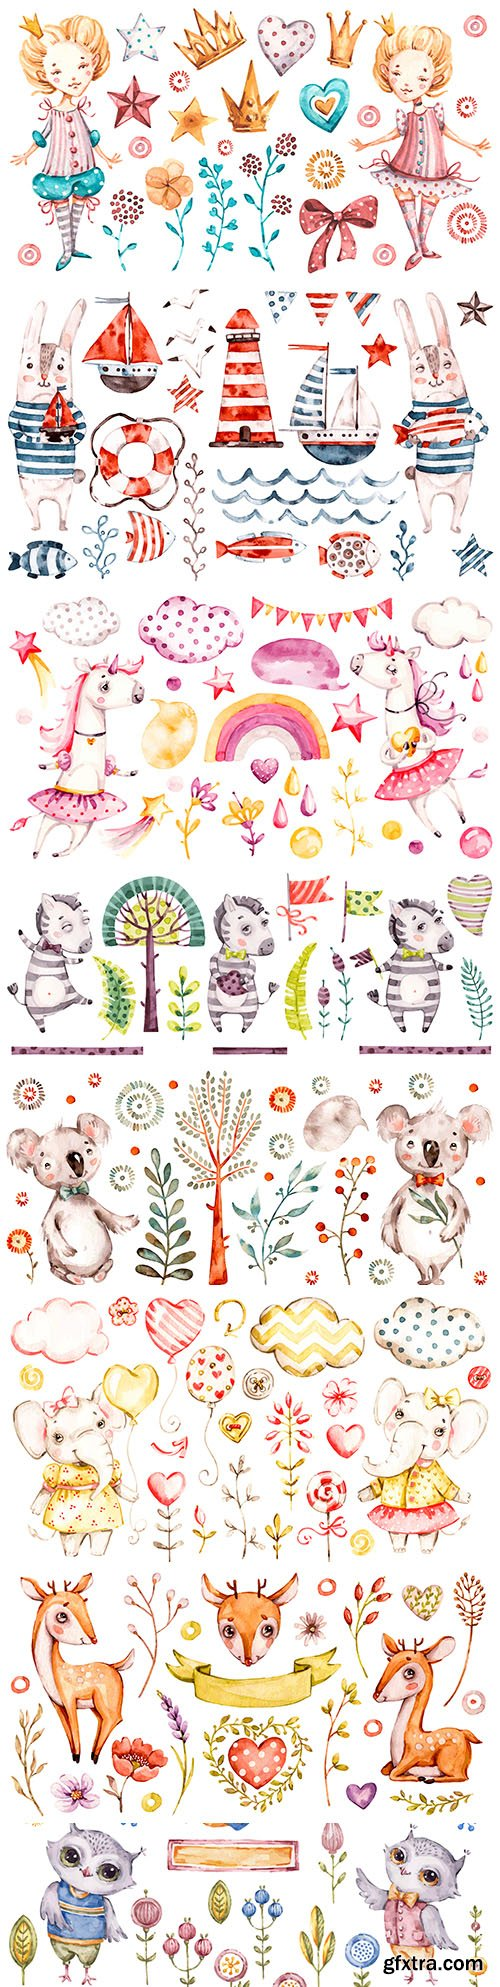 Cute animals and elements watercolor illustrations